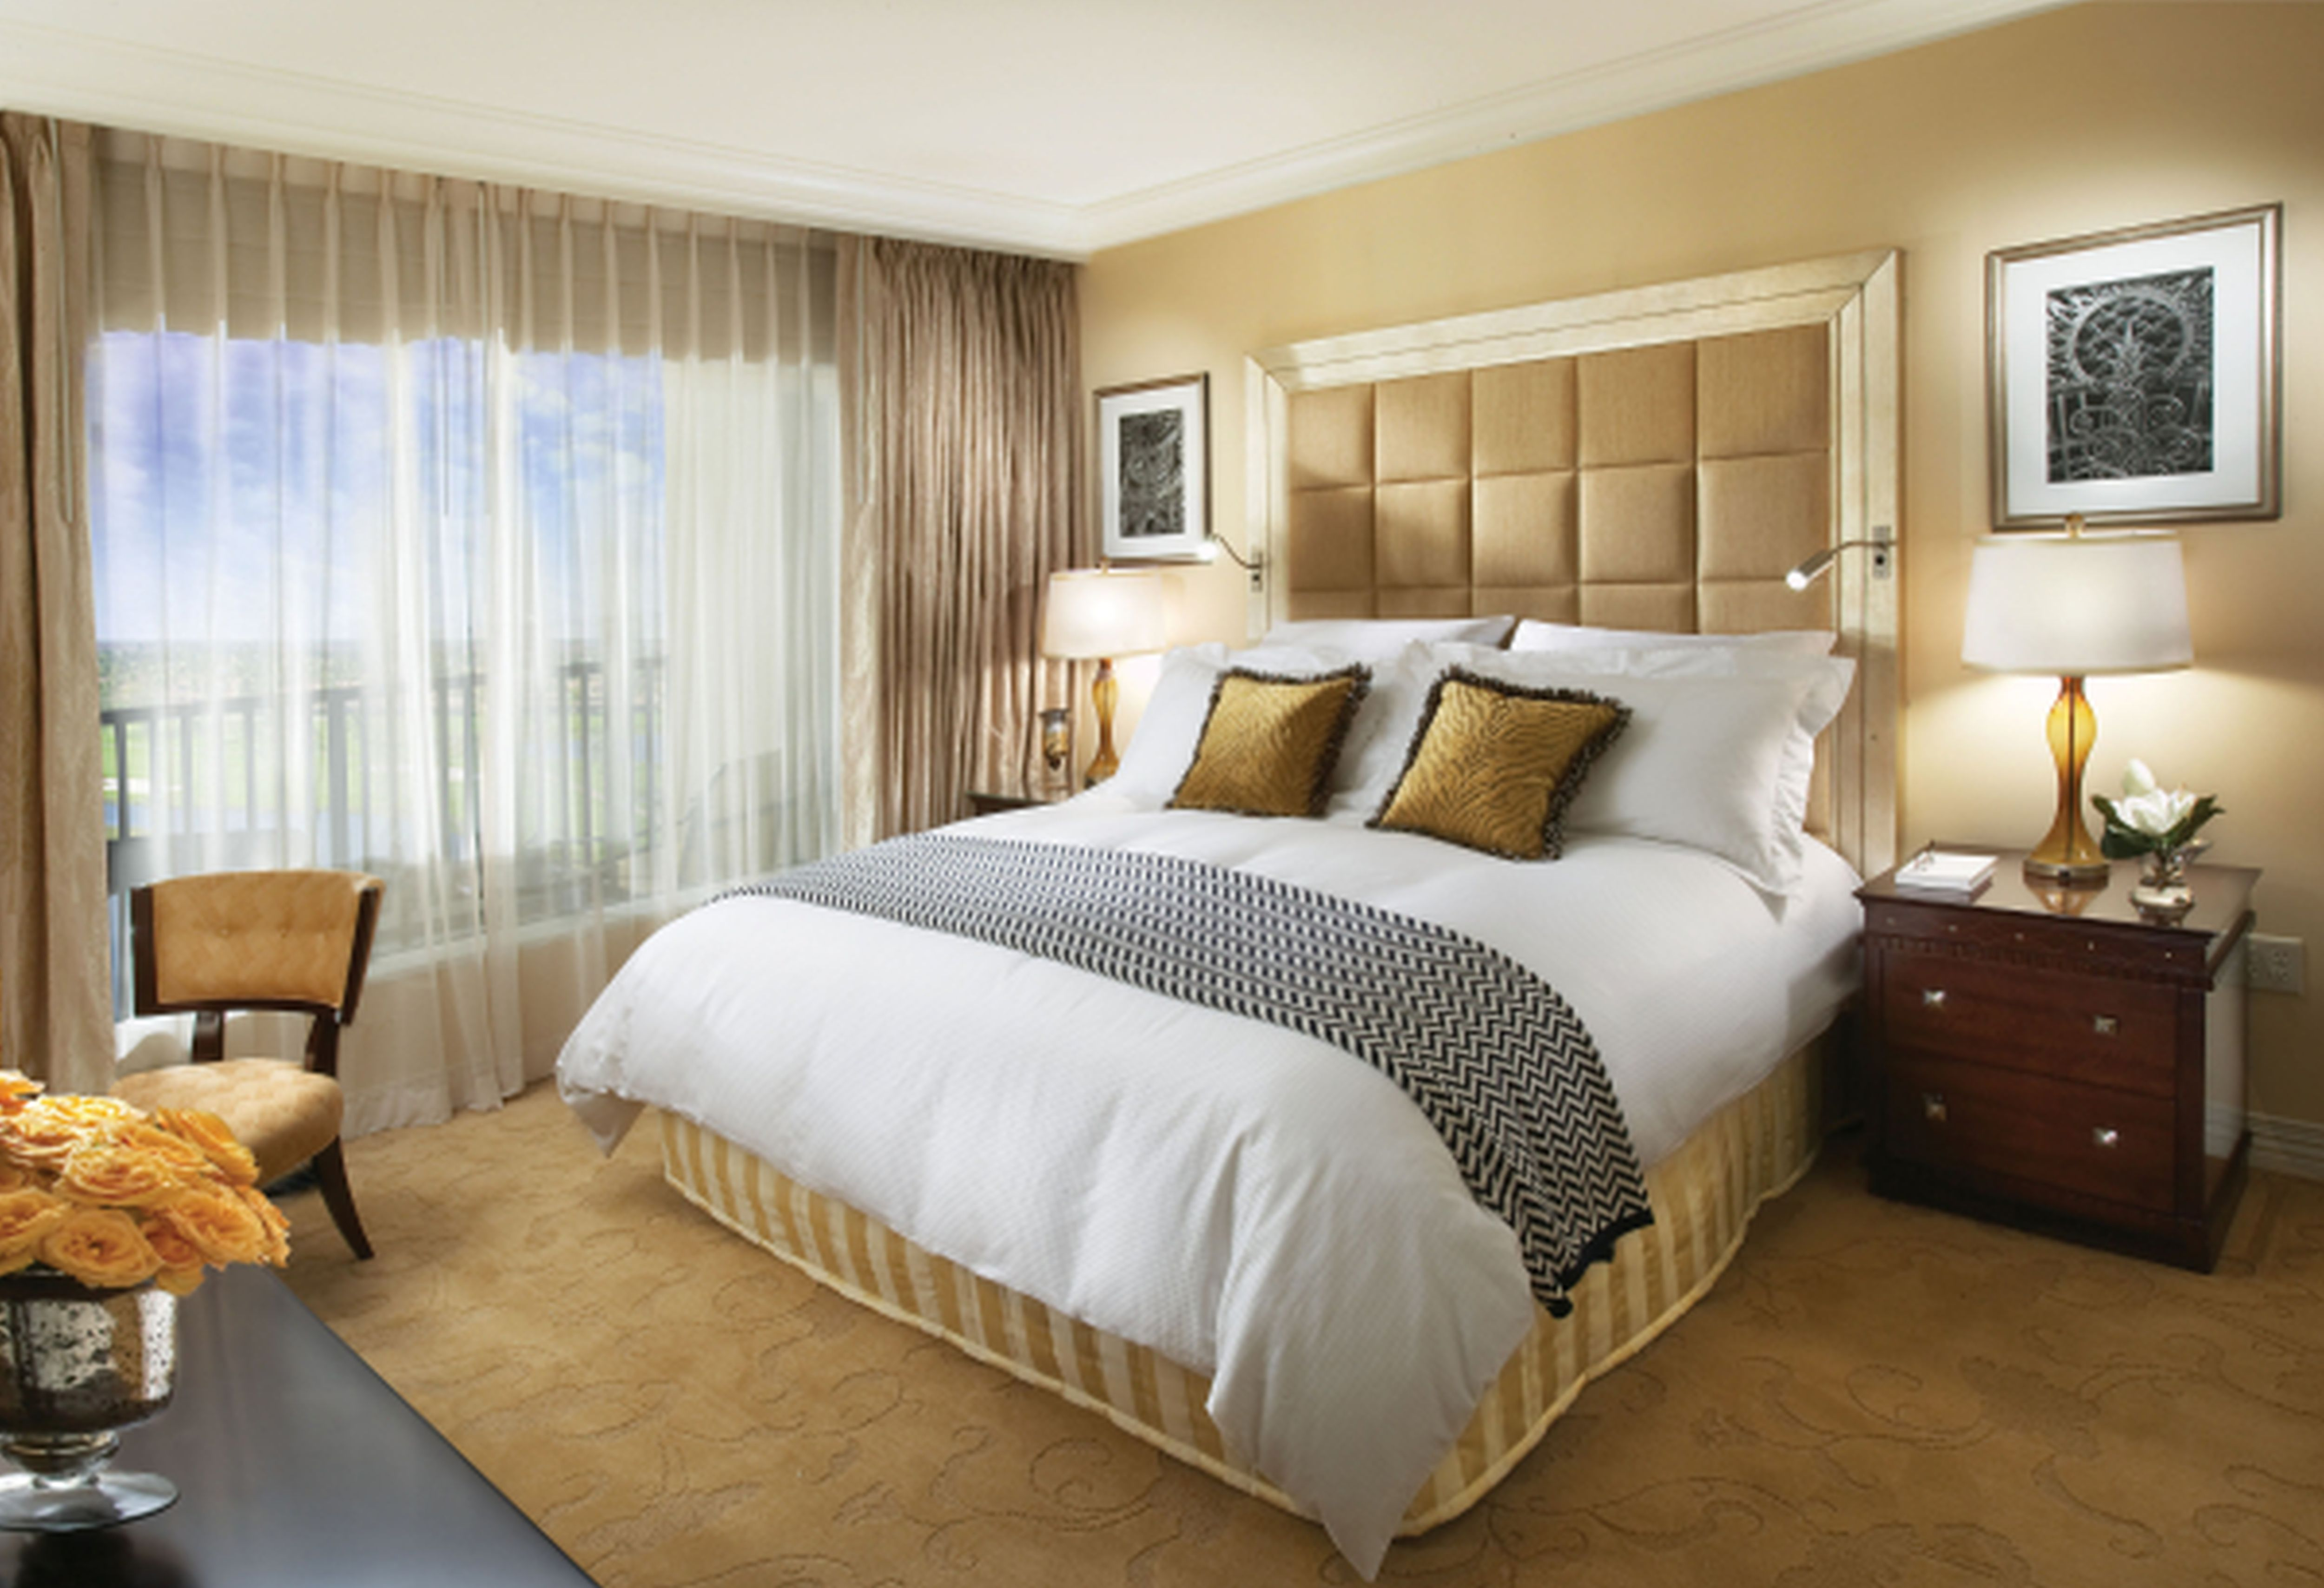 Bedroom Color Ideas – the Nuance of Choosing Tone